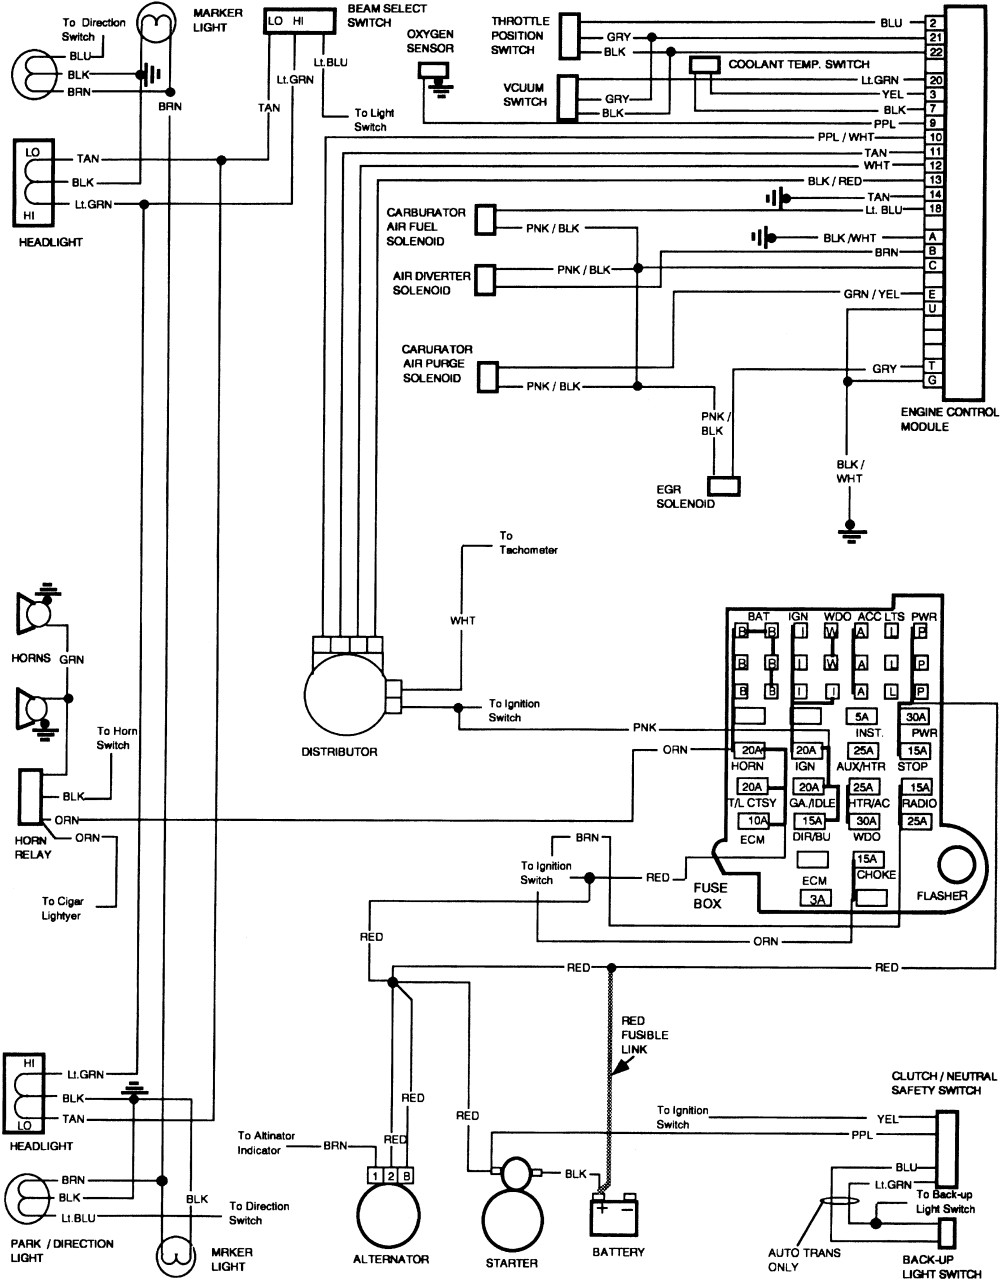 Swell Chevy Luv Ignition Wiring Wiring Diagram Wiring Cloud Intelaidewilluminateatxorg